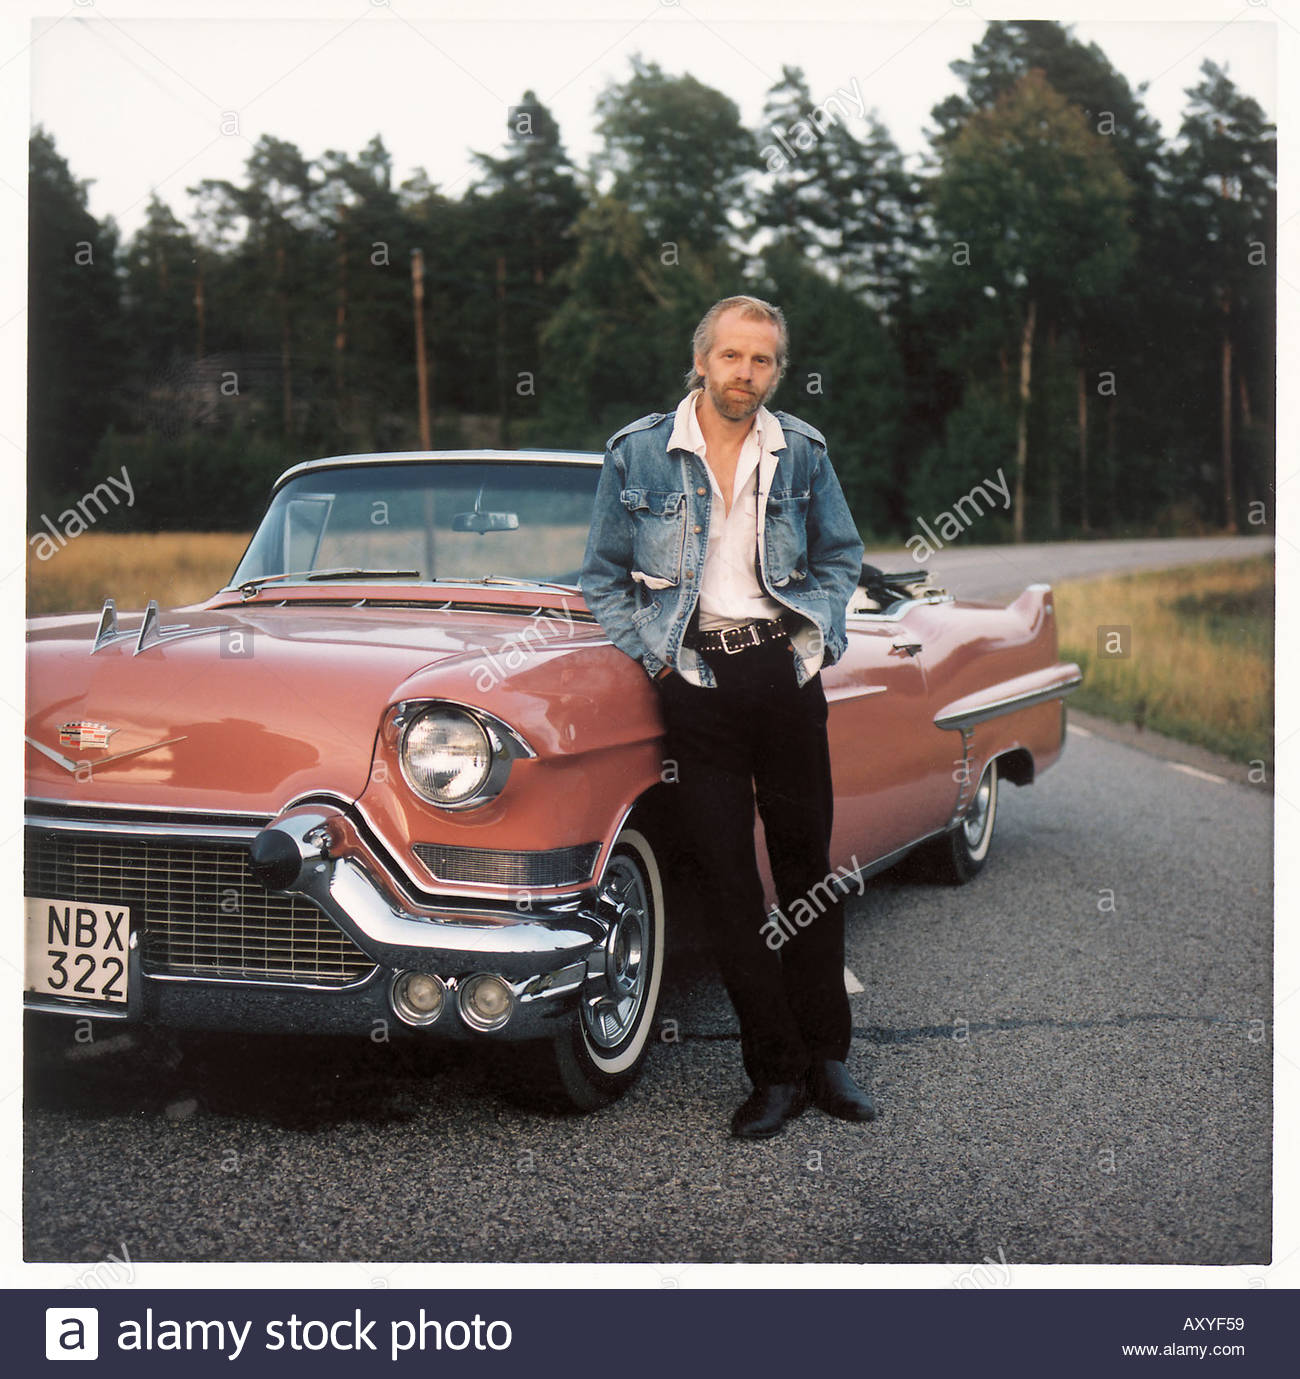 A Man Standing Beside An Old Car Stock Photo, Royalty Free